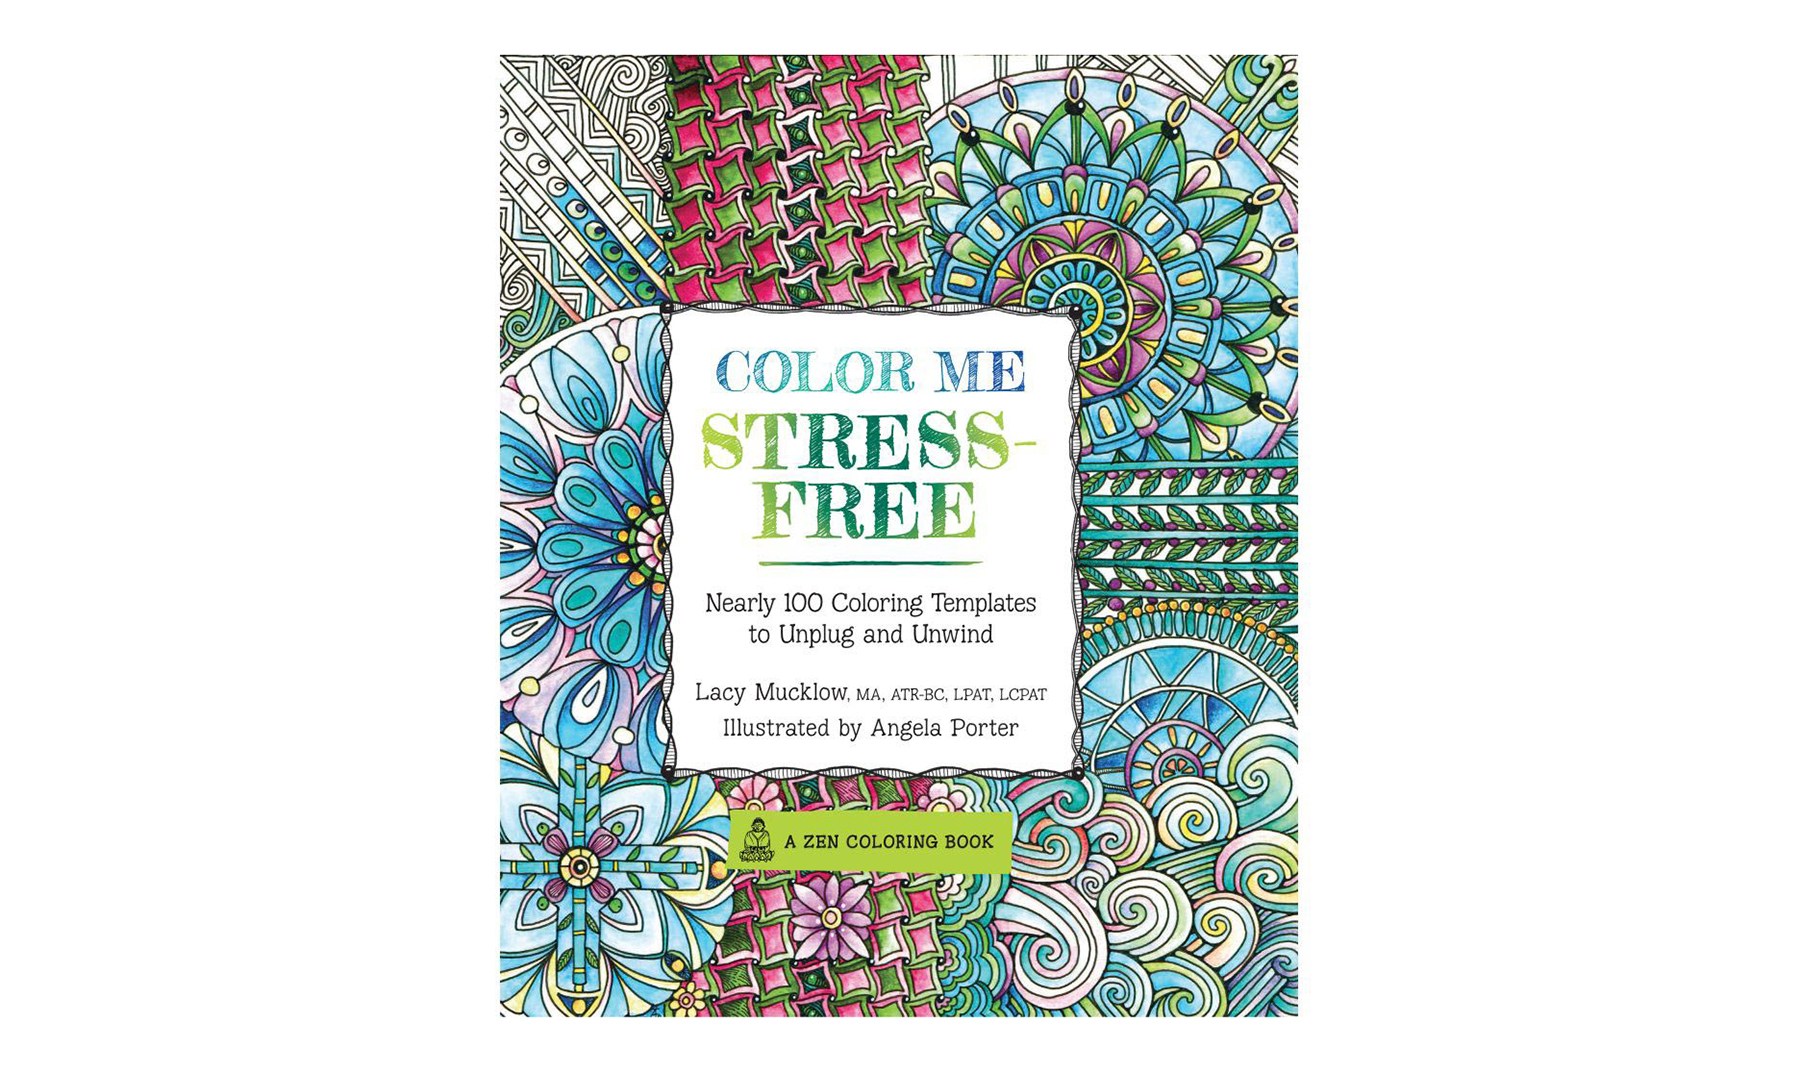 Color Me Stress-Free, by Lacy Mucklow and Angela Porter